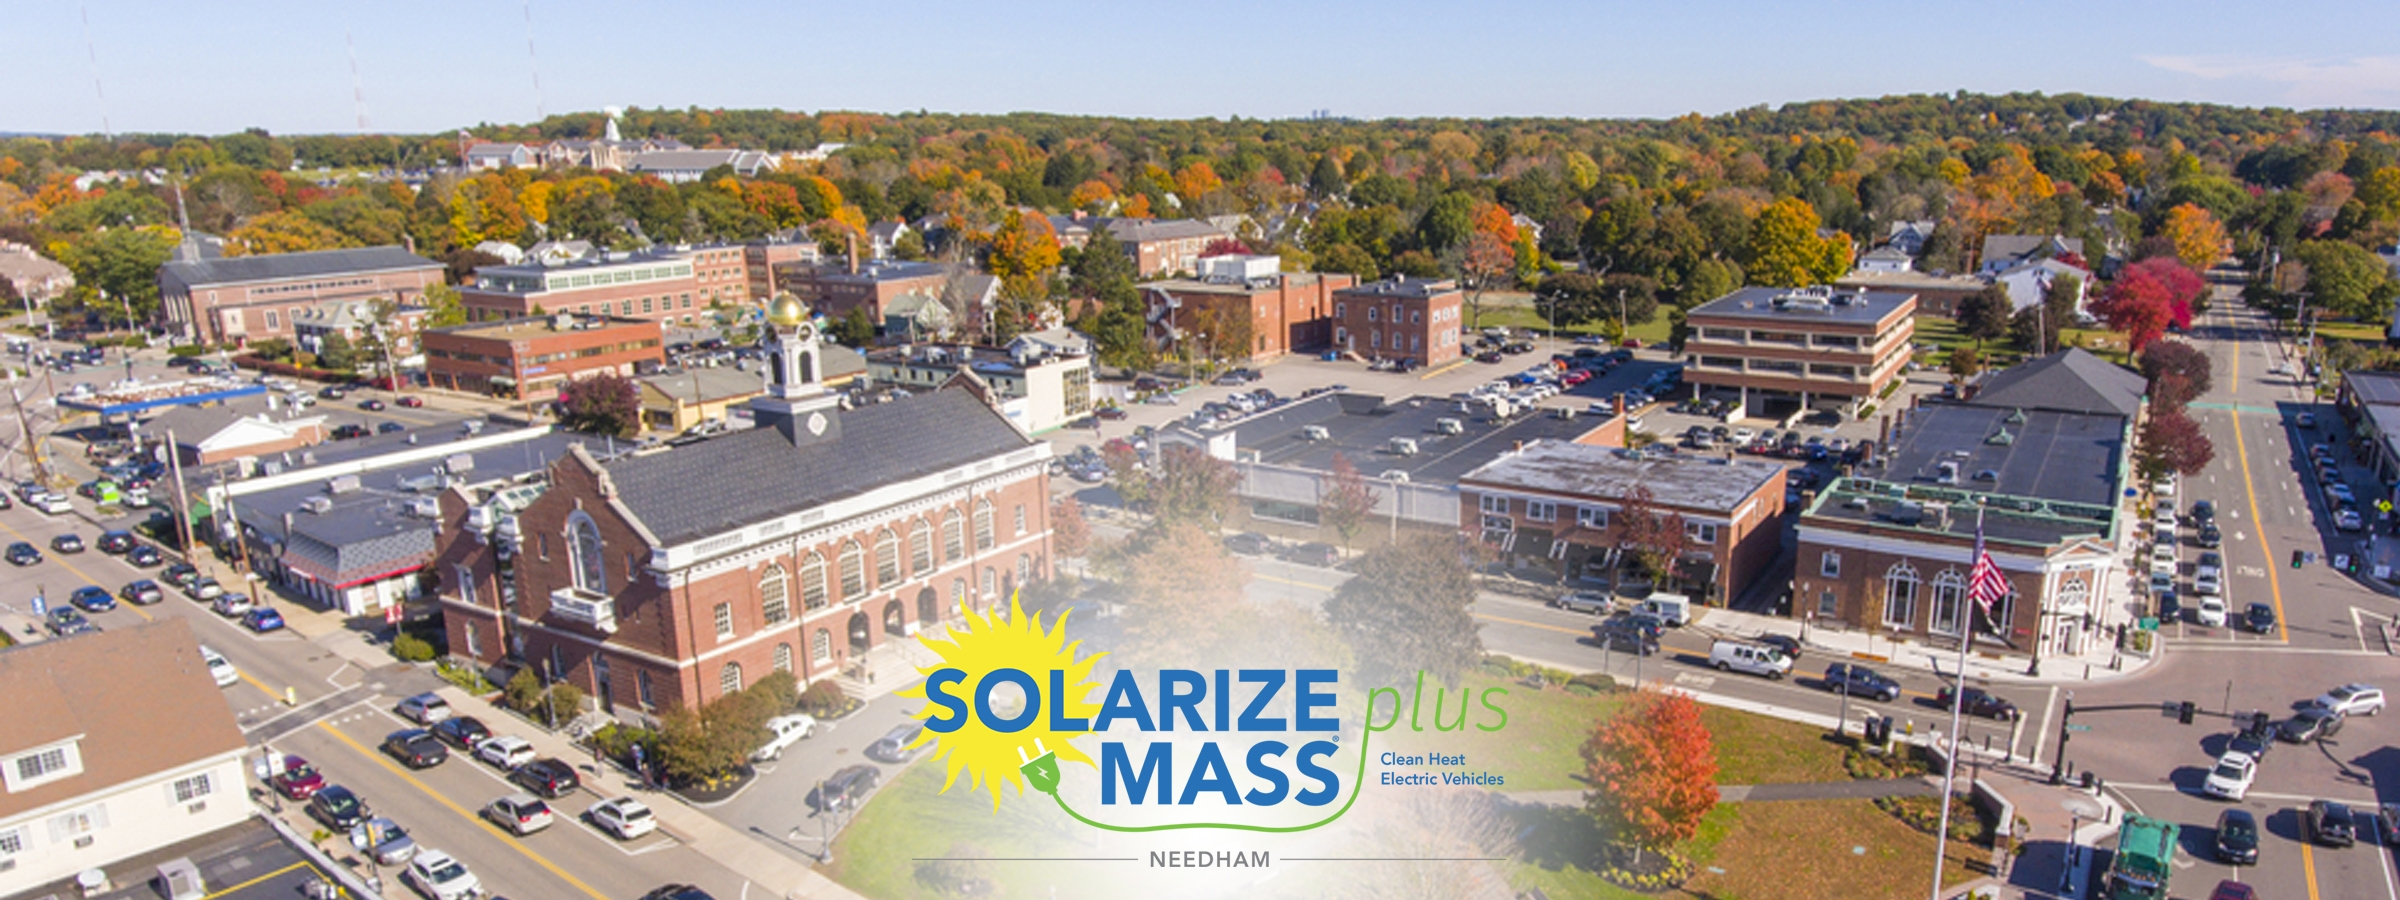 Solarize Mass Plus Program Offers Big Savings for Needham Homeowners